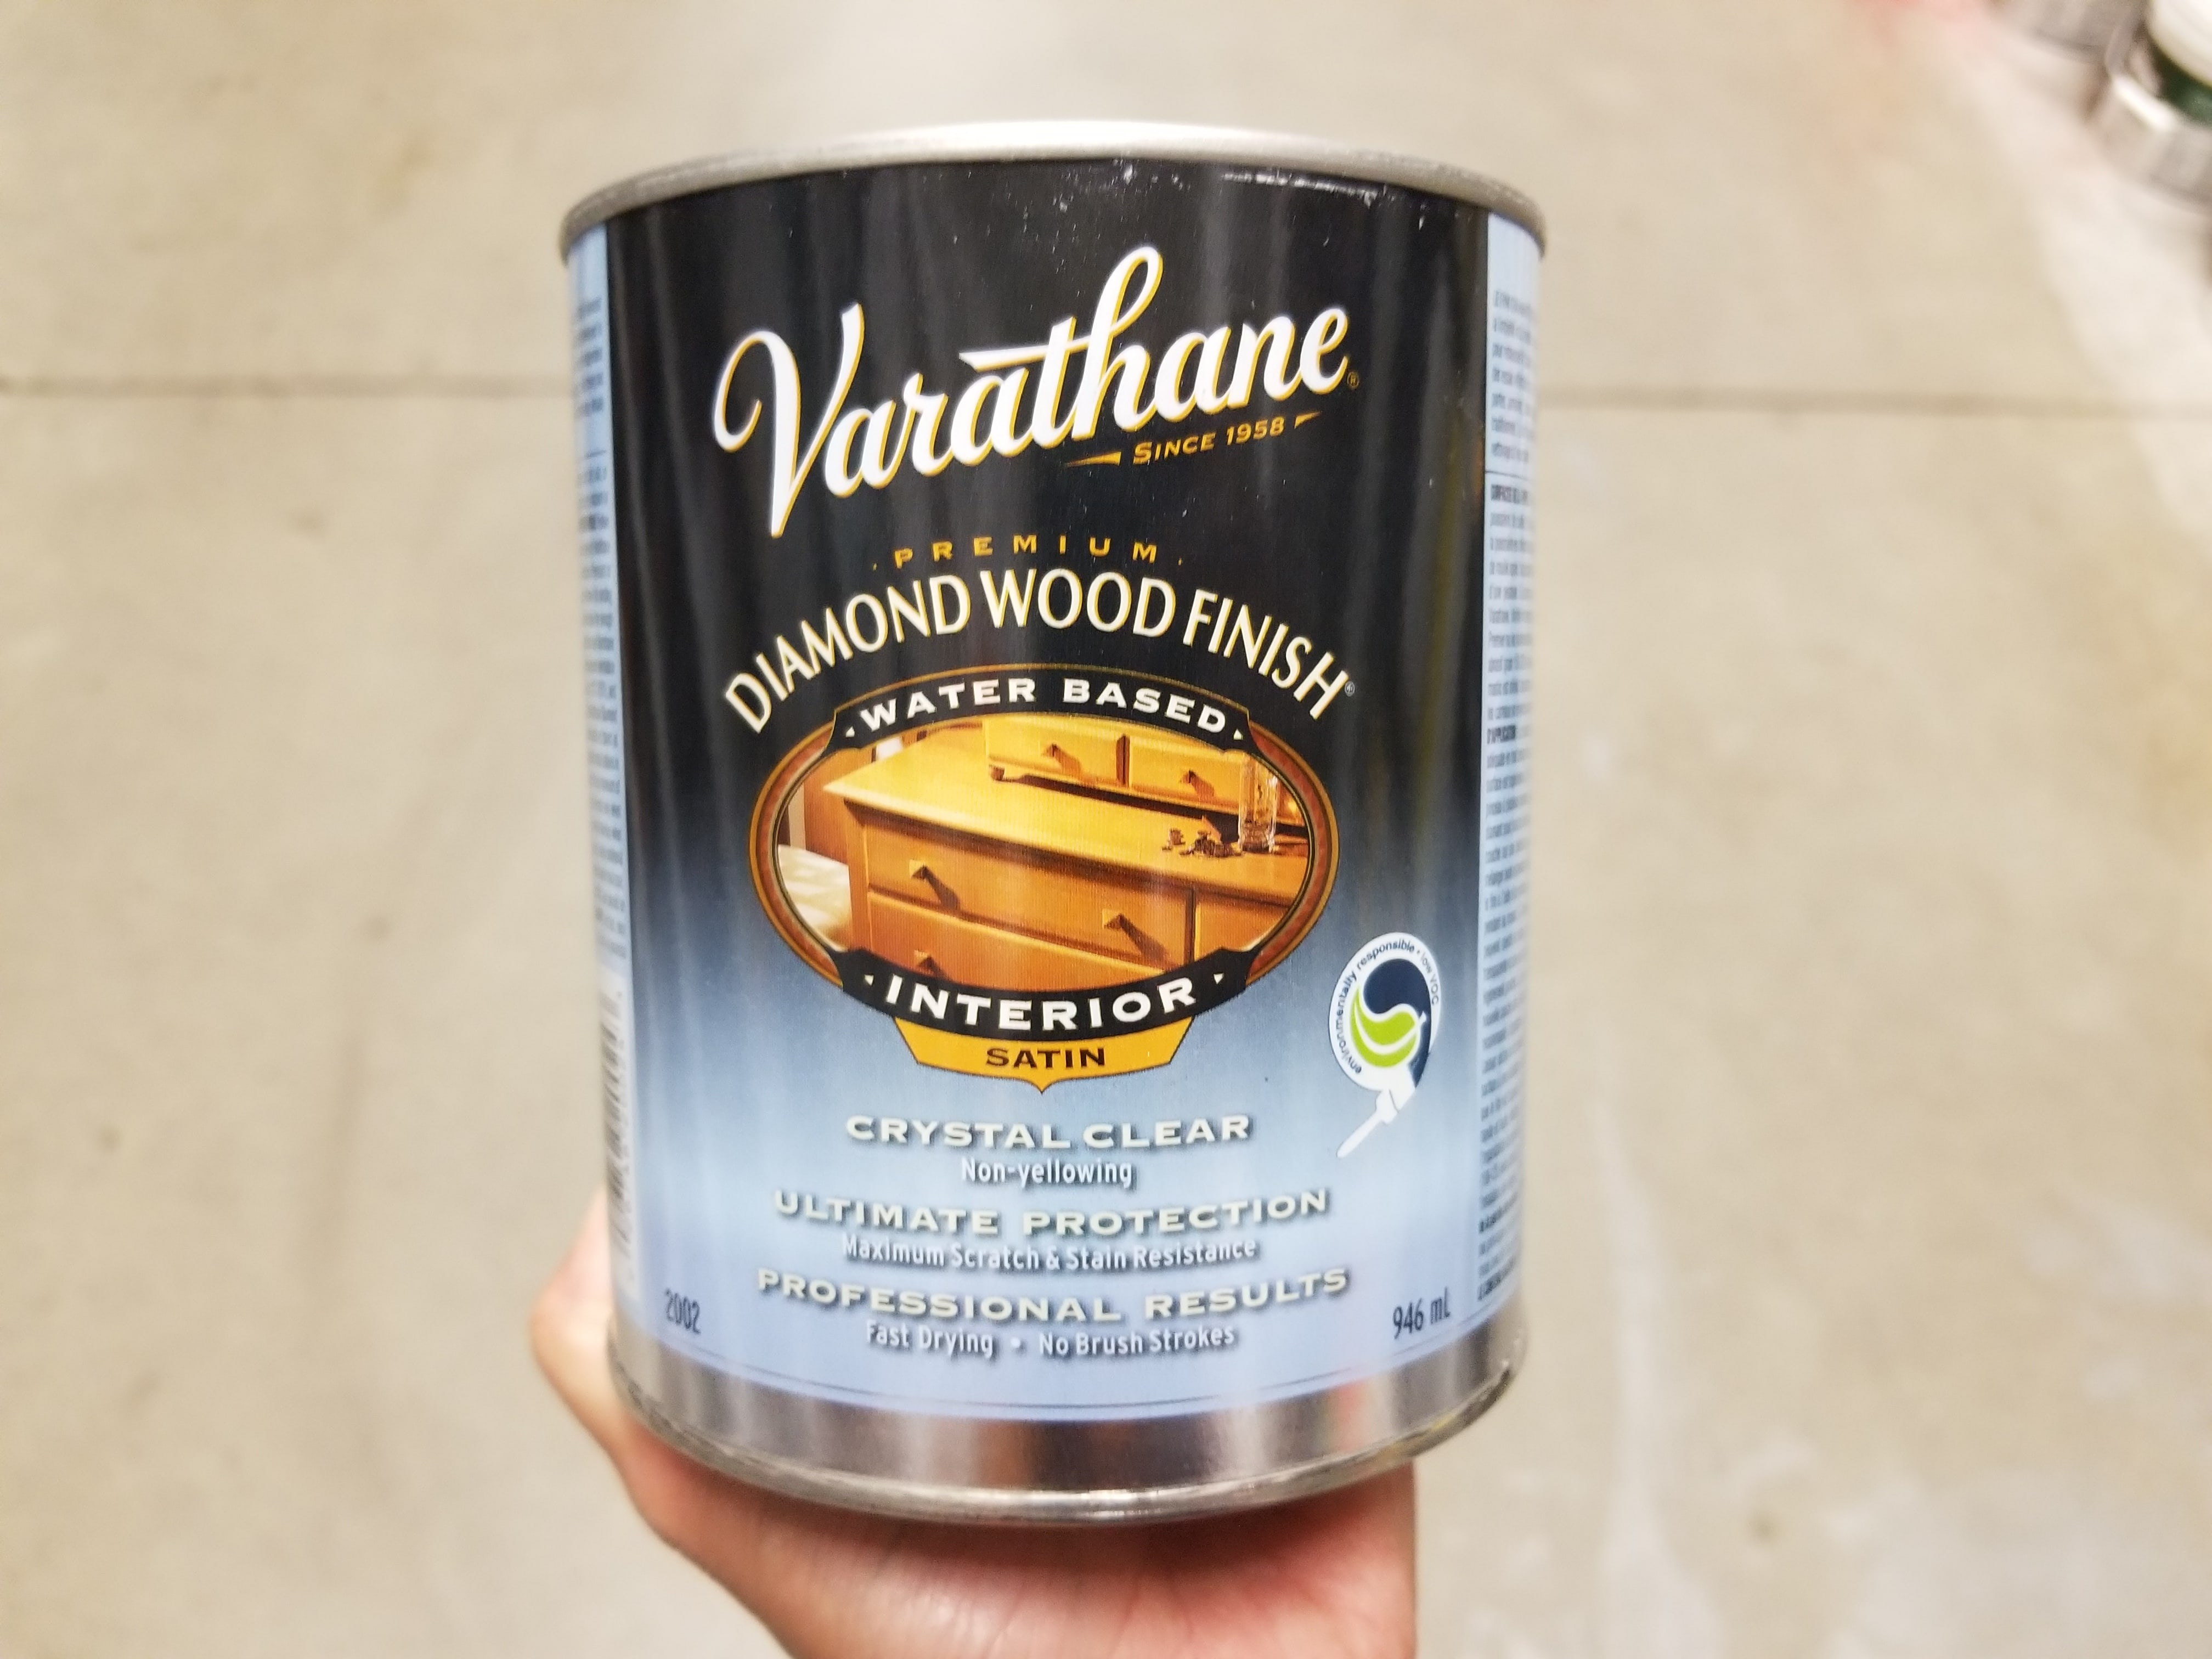 Varathane wood finish satin